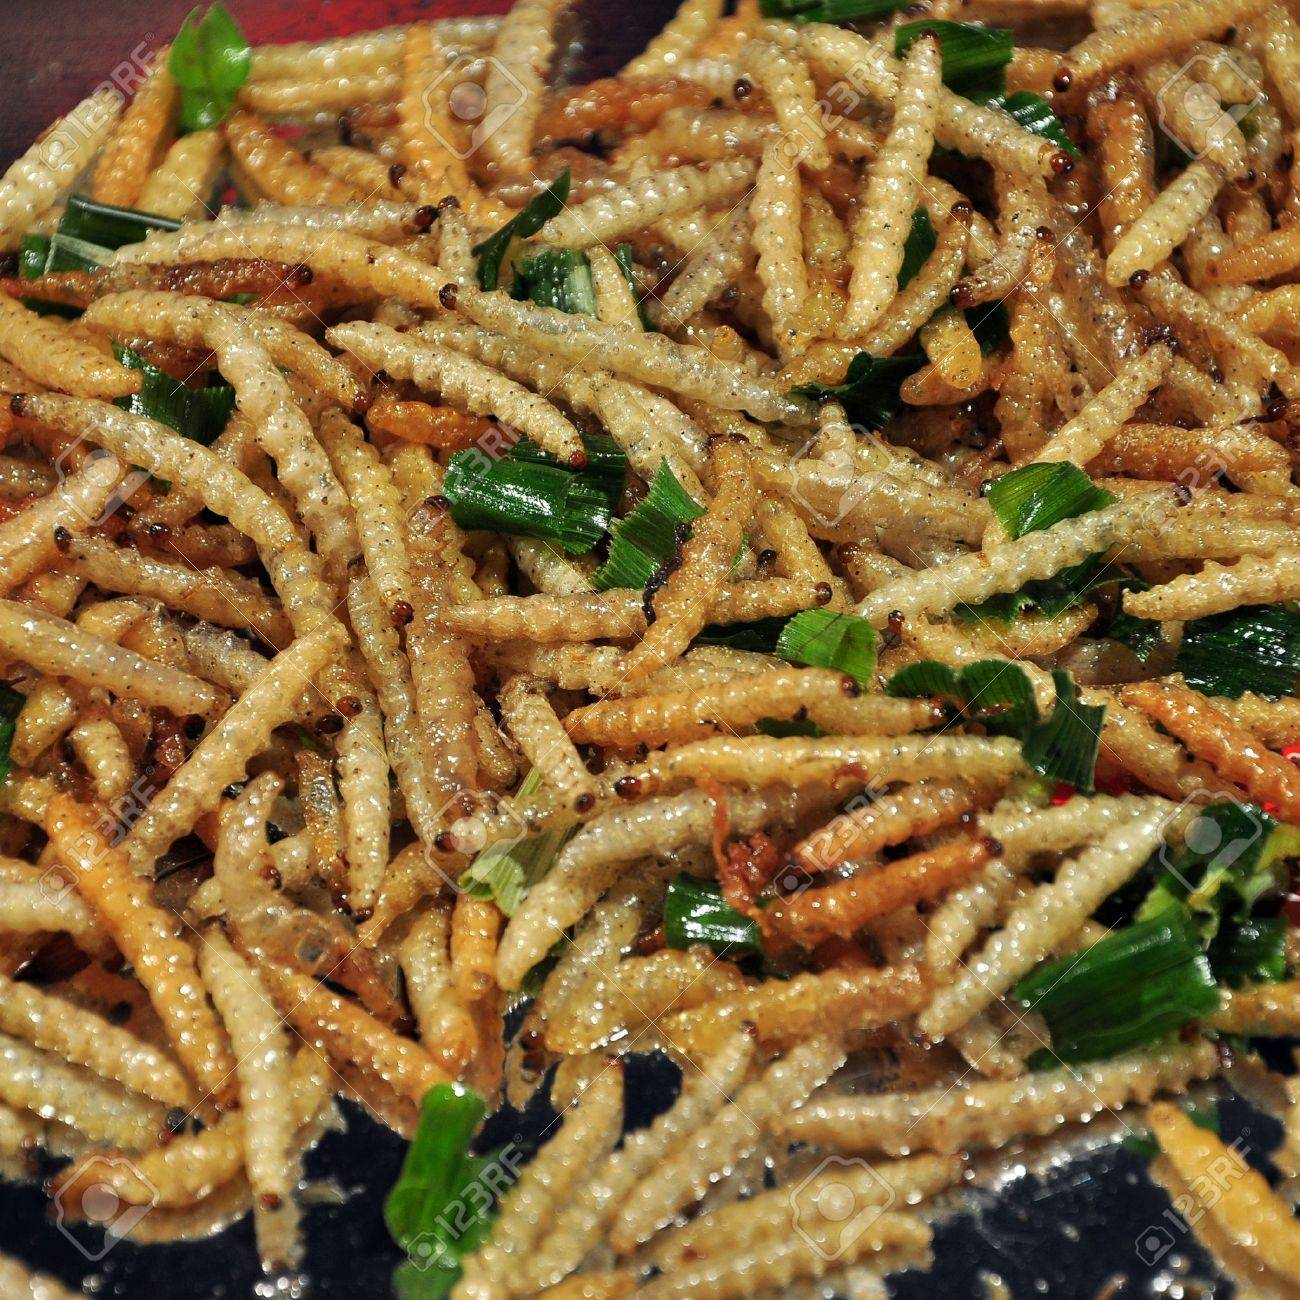 Deep Fried Caterpillars Worms Stock Photo 19911878